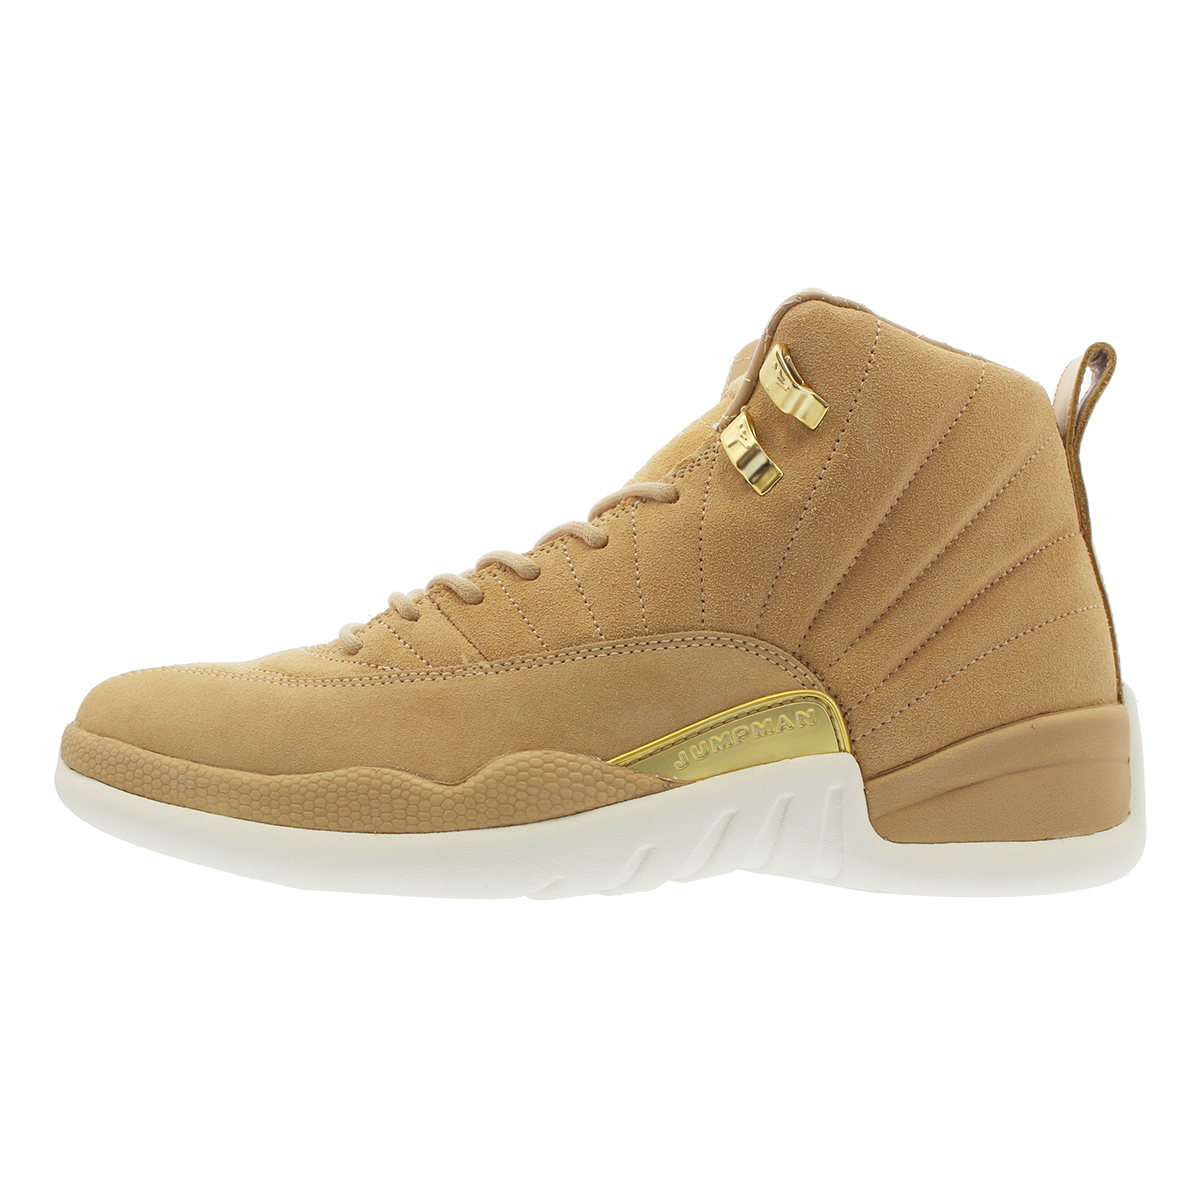 finest selection 7bbd8 4833b NIKE WMNS AIR JORDAN 12 RETRO Nike women Air Jordan 12 nostalgic VACHETTA  TAN MTLC GOLD SAIL ao6068-203-l